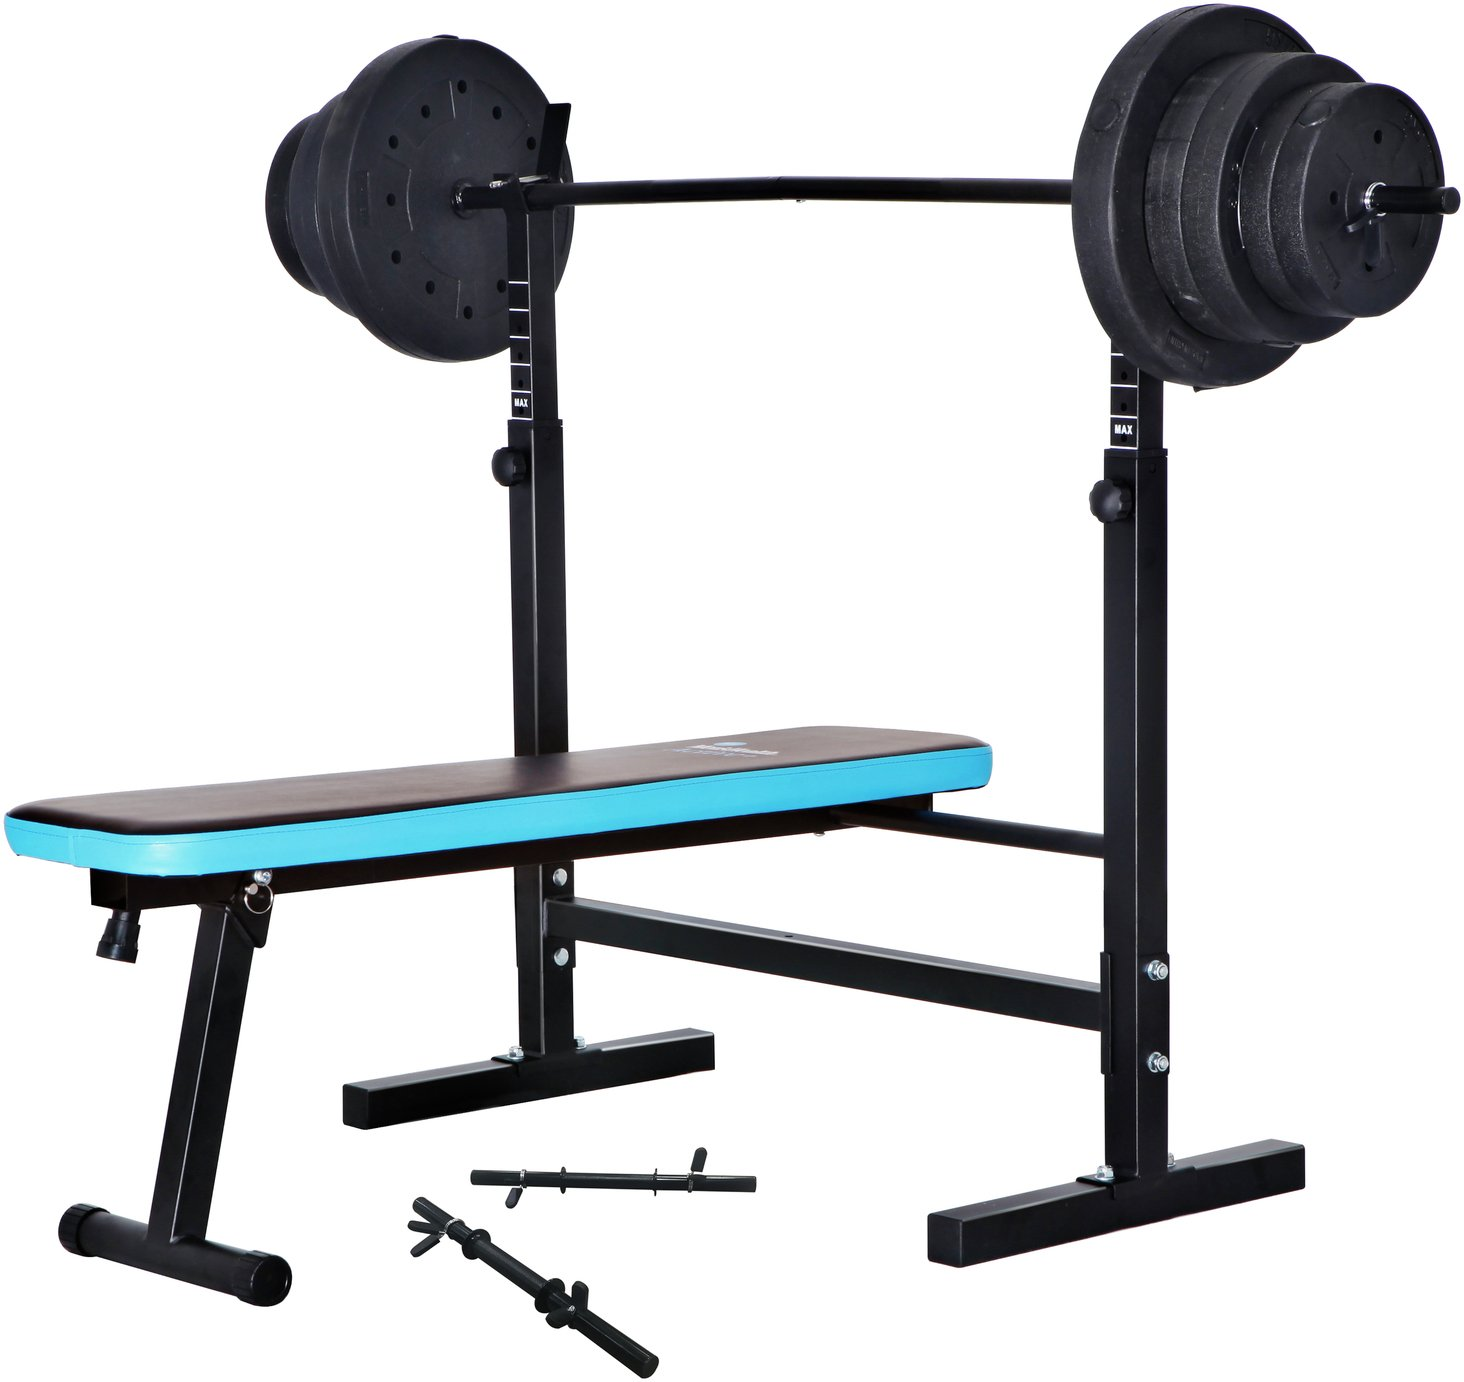 chair gym argos wedding covers rose weight benches exercise men s health folding bench with 50kg weights